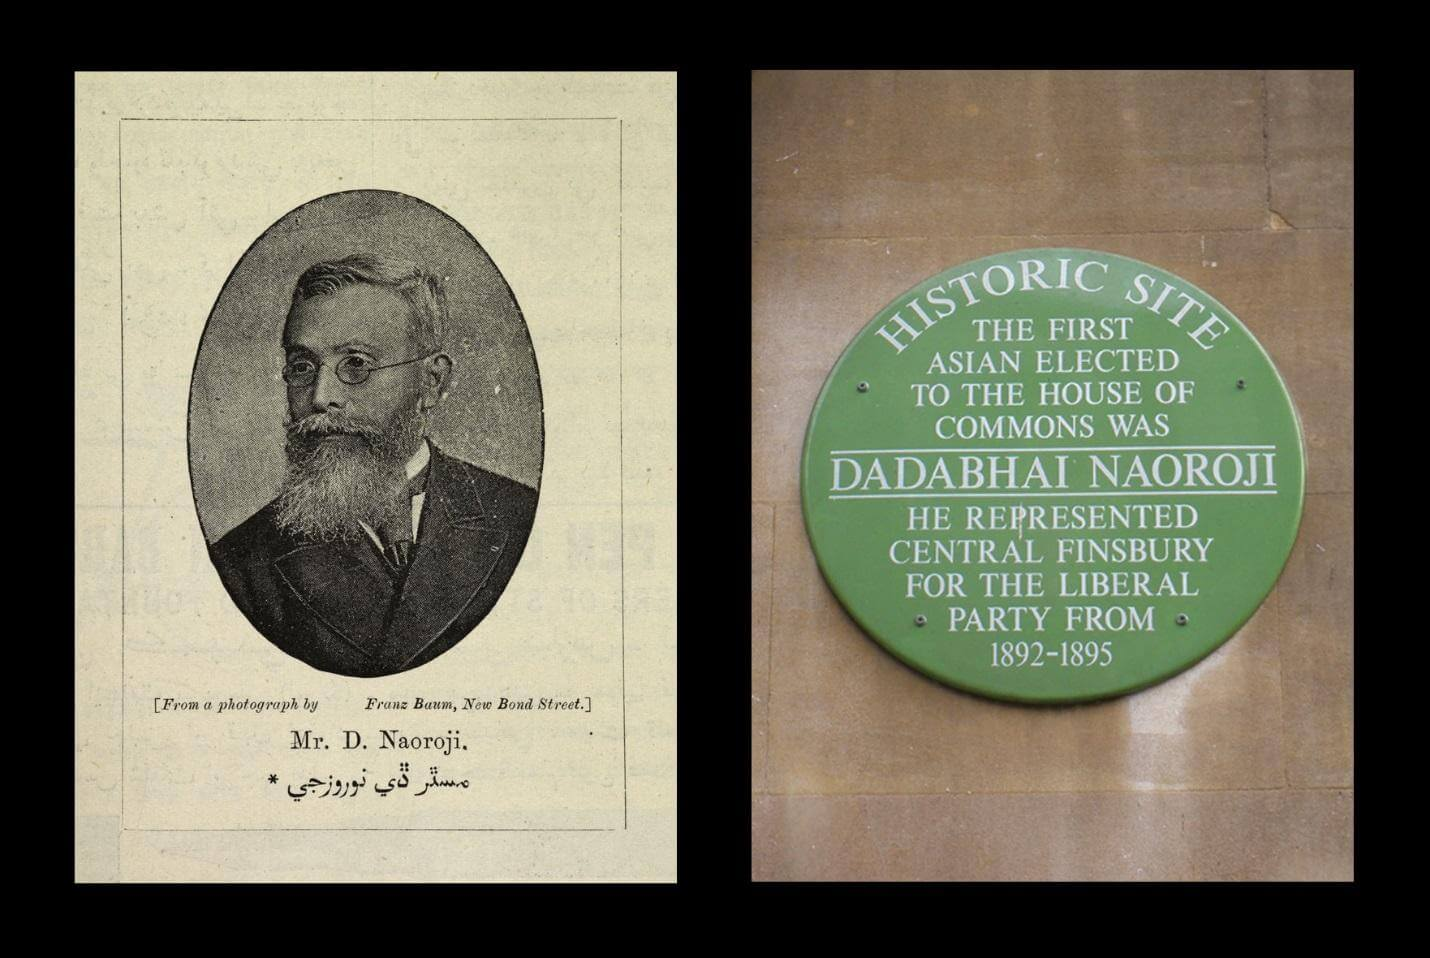 Dadabhai Naoroji's role in the Indian freedom struggle